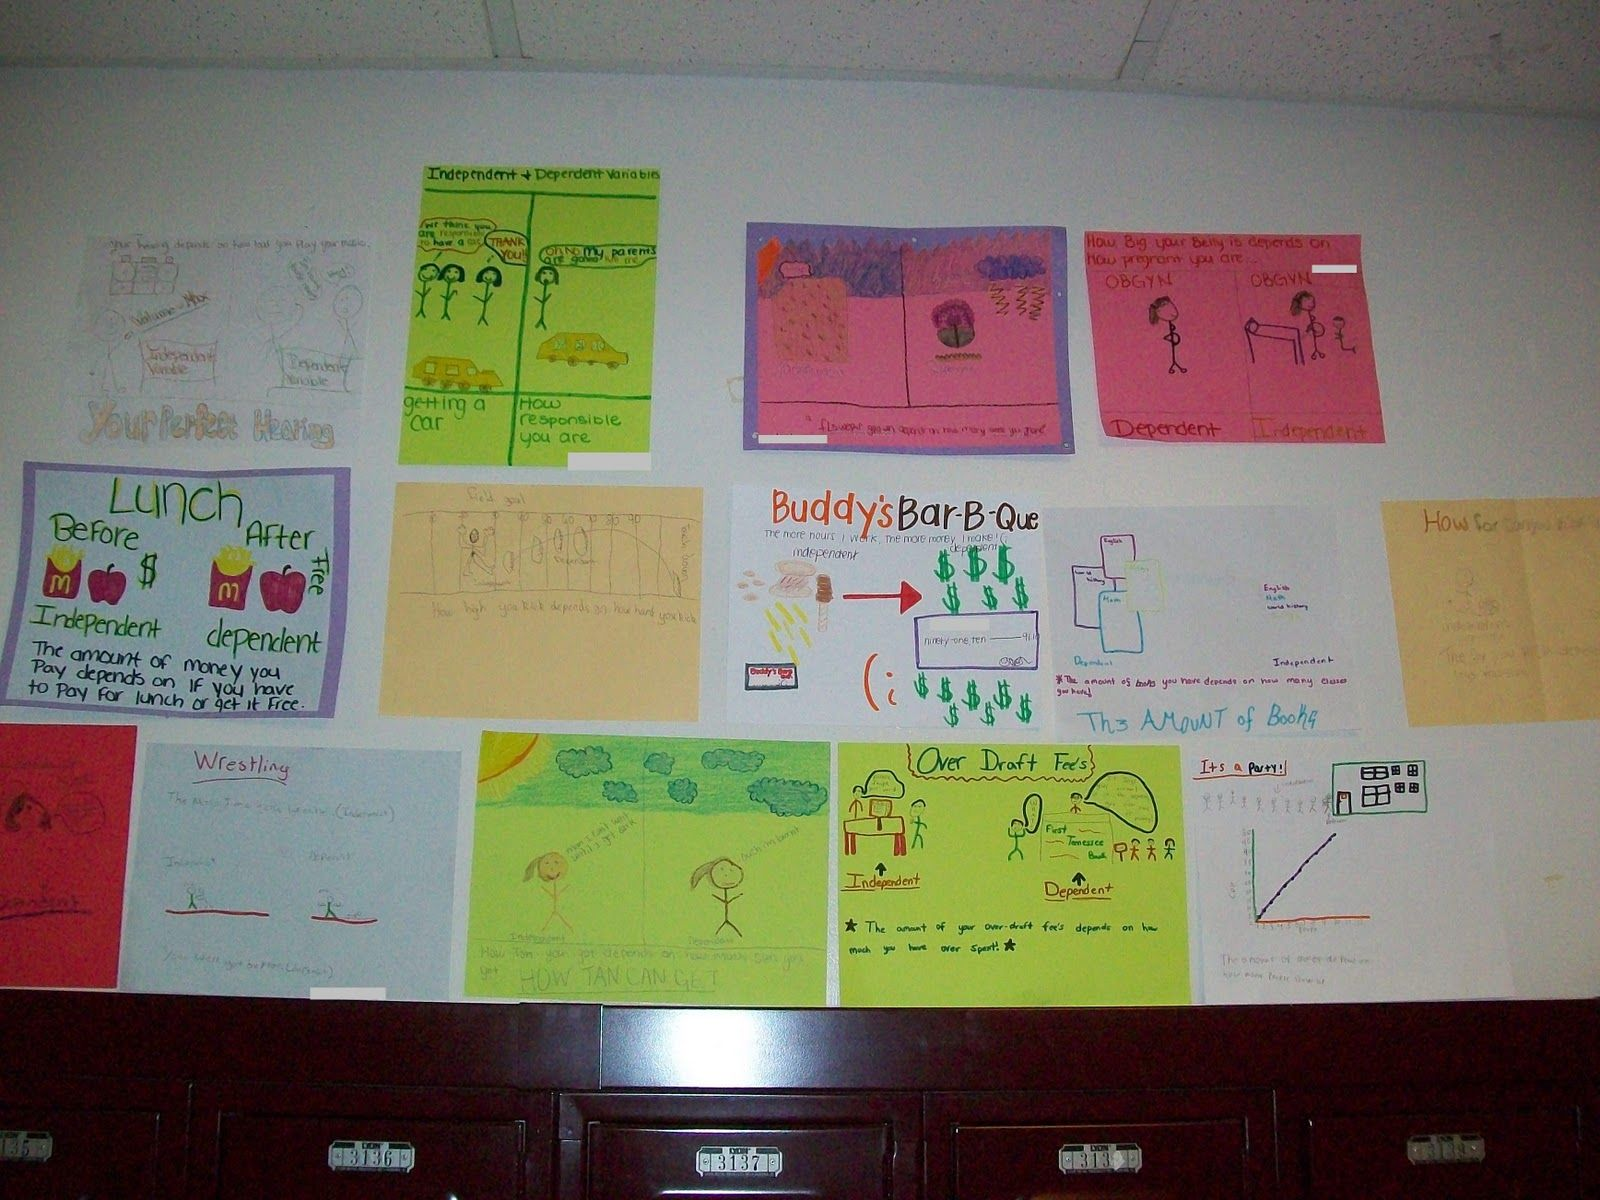 Independent Vs Dependent Variable Poster Project